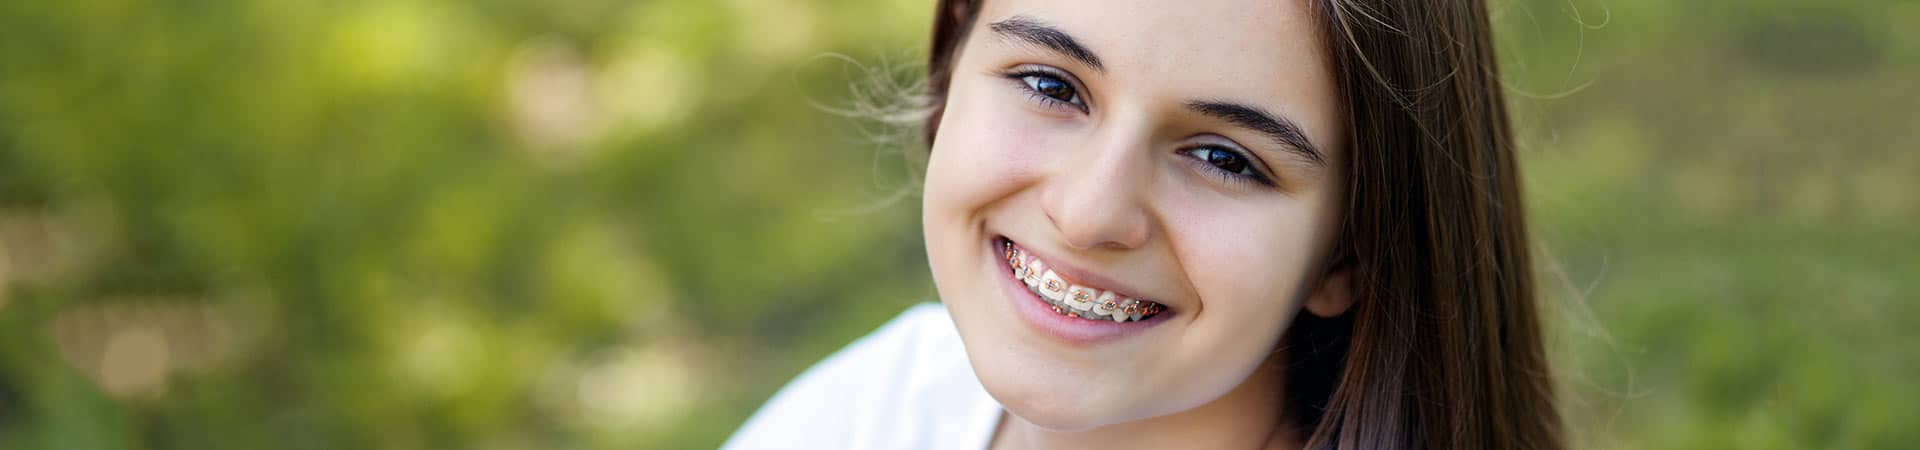 Braces 101 Girl at Northeast Orthodontic Specialists in Loveland Cincinnati OH